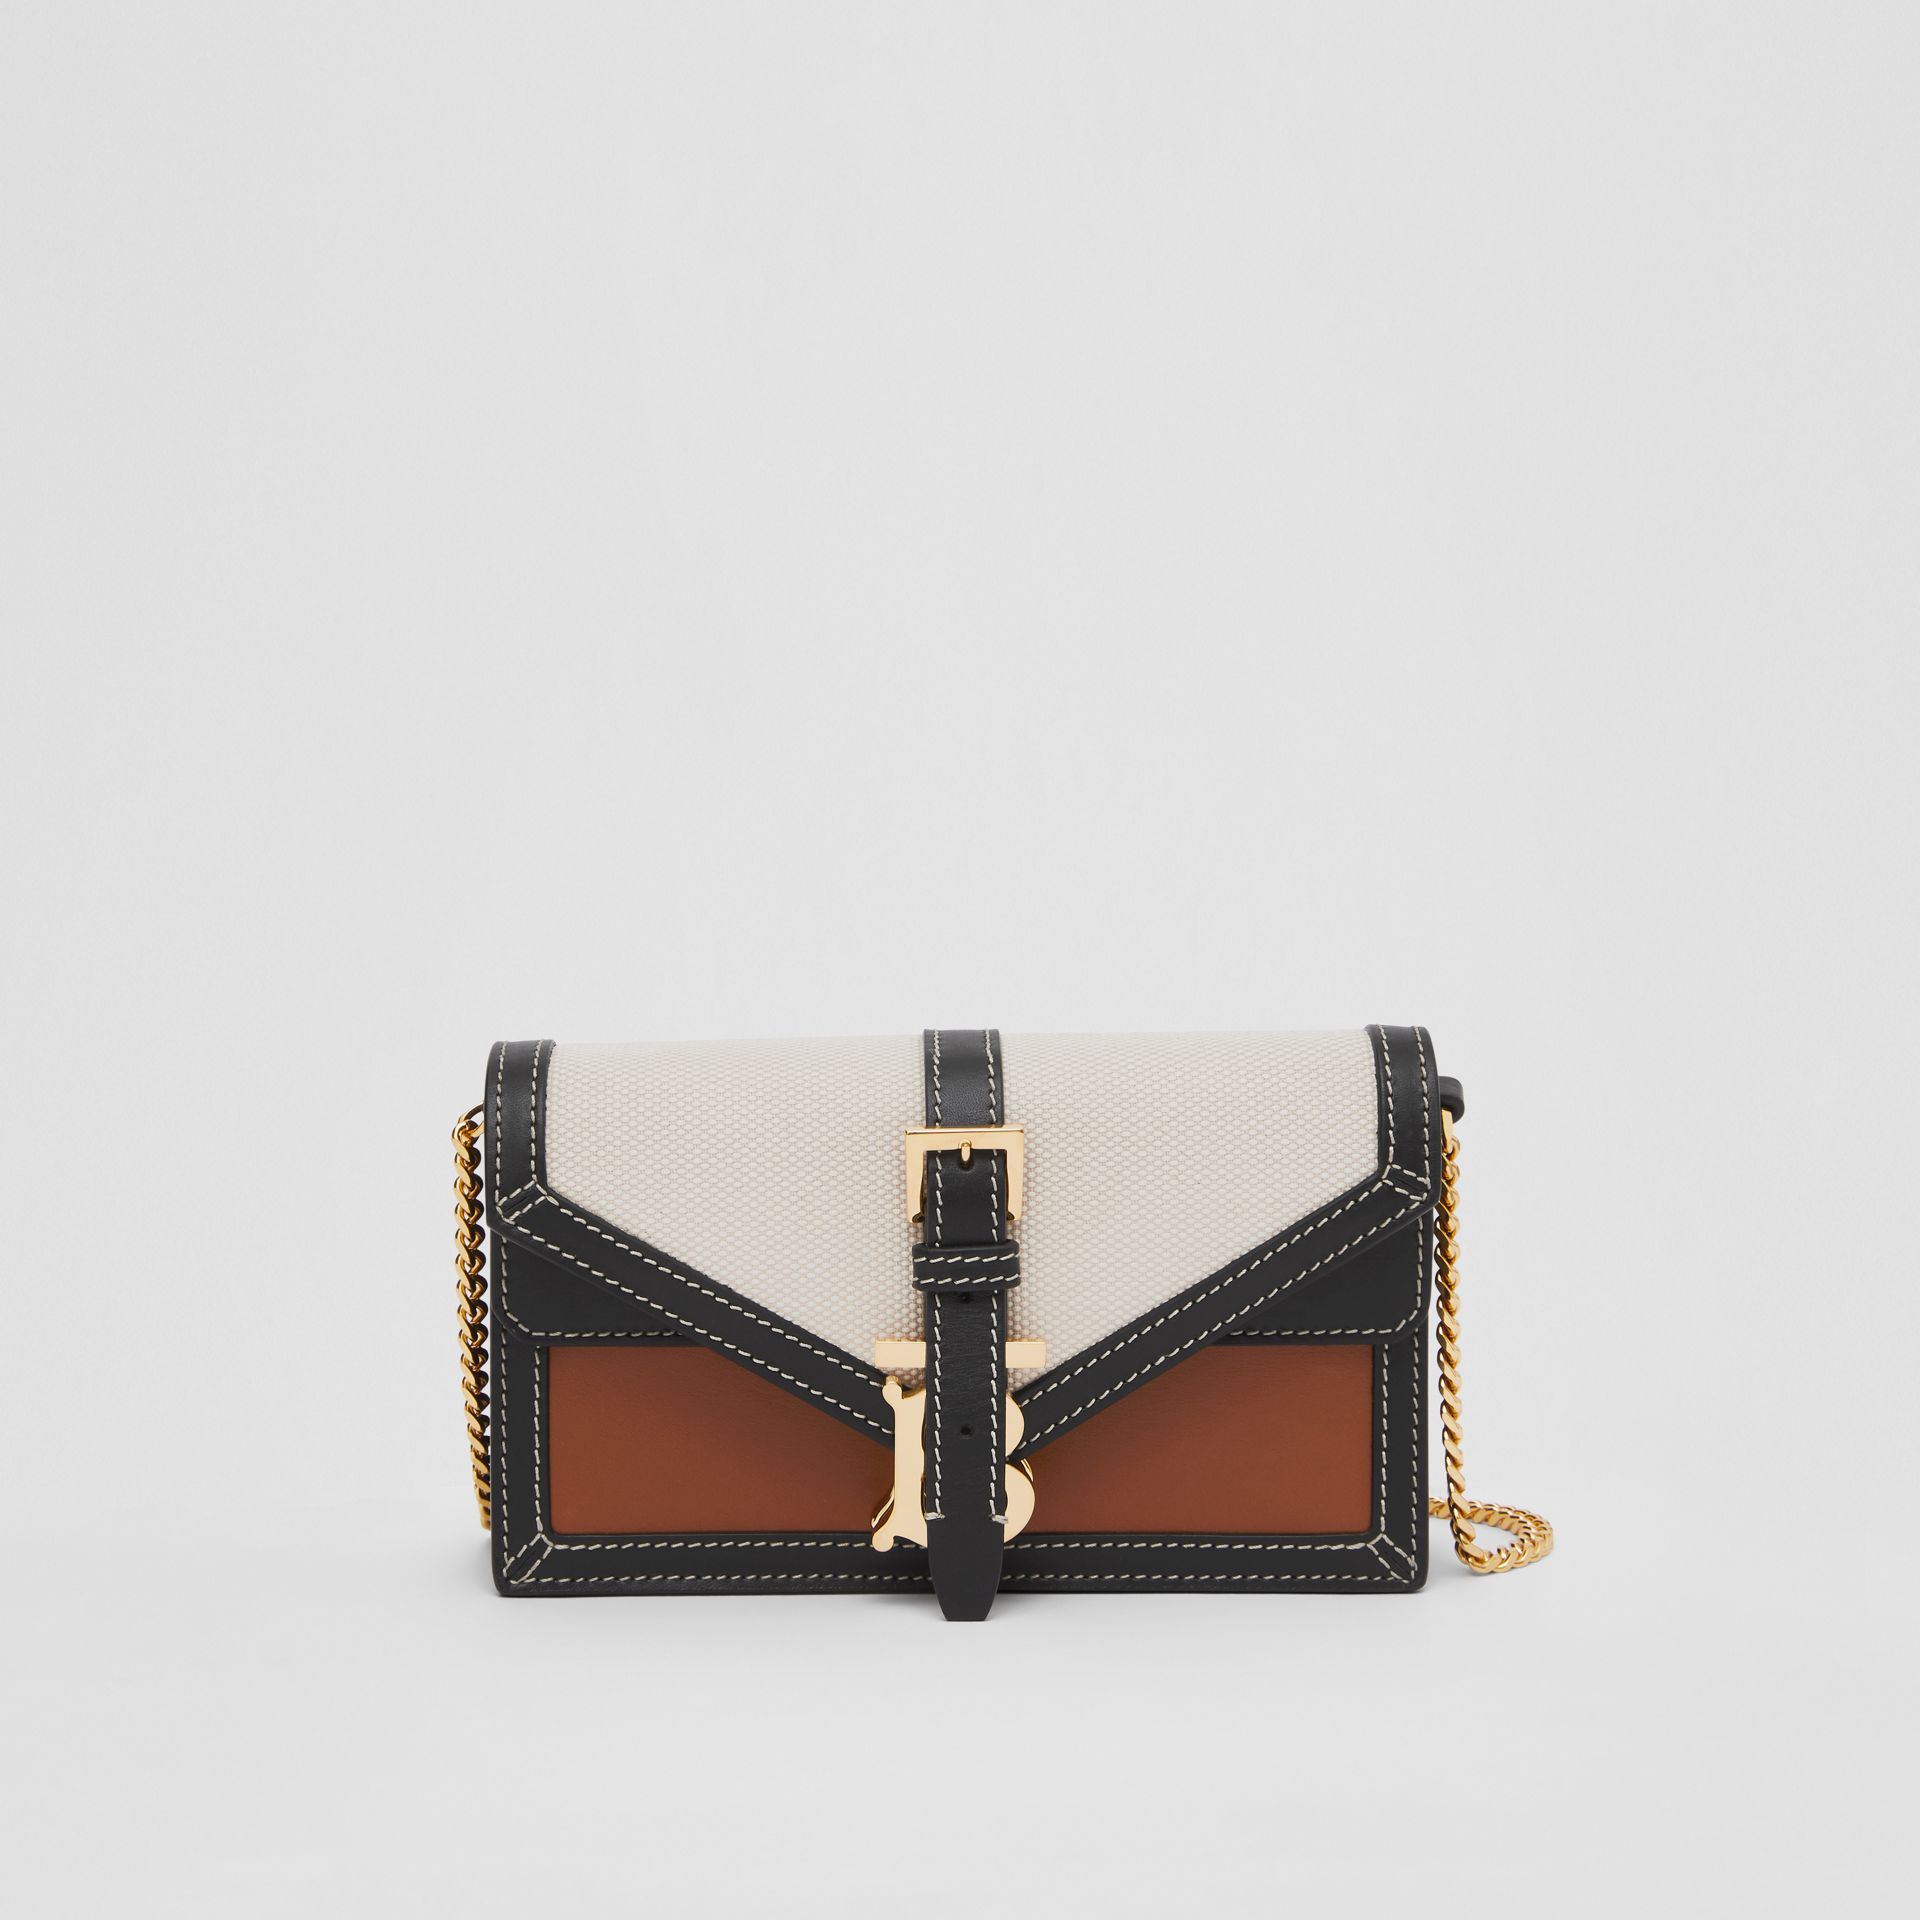 Mini Canvas and Leather TB Envelope Clutch in Tan - Women | Burberry Singapore - gallery image 0